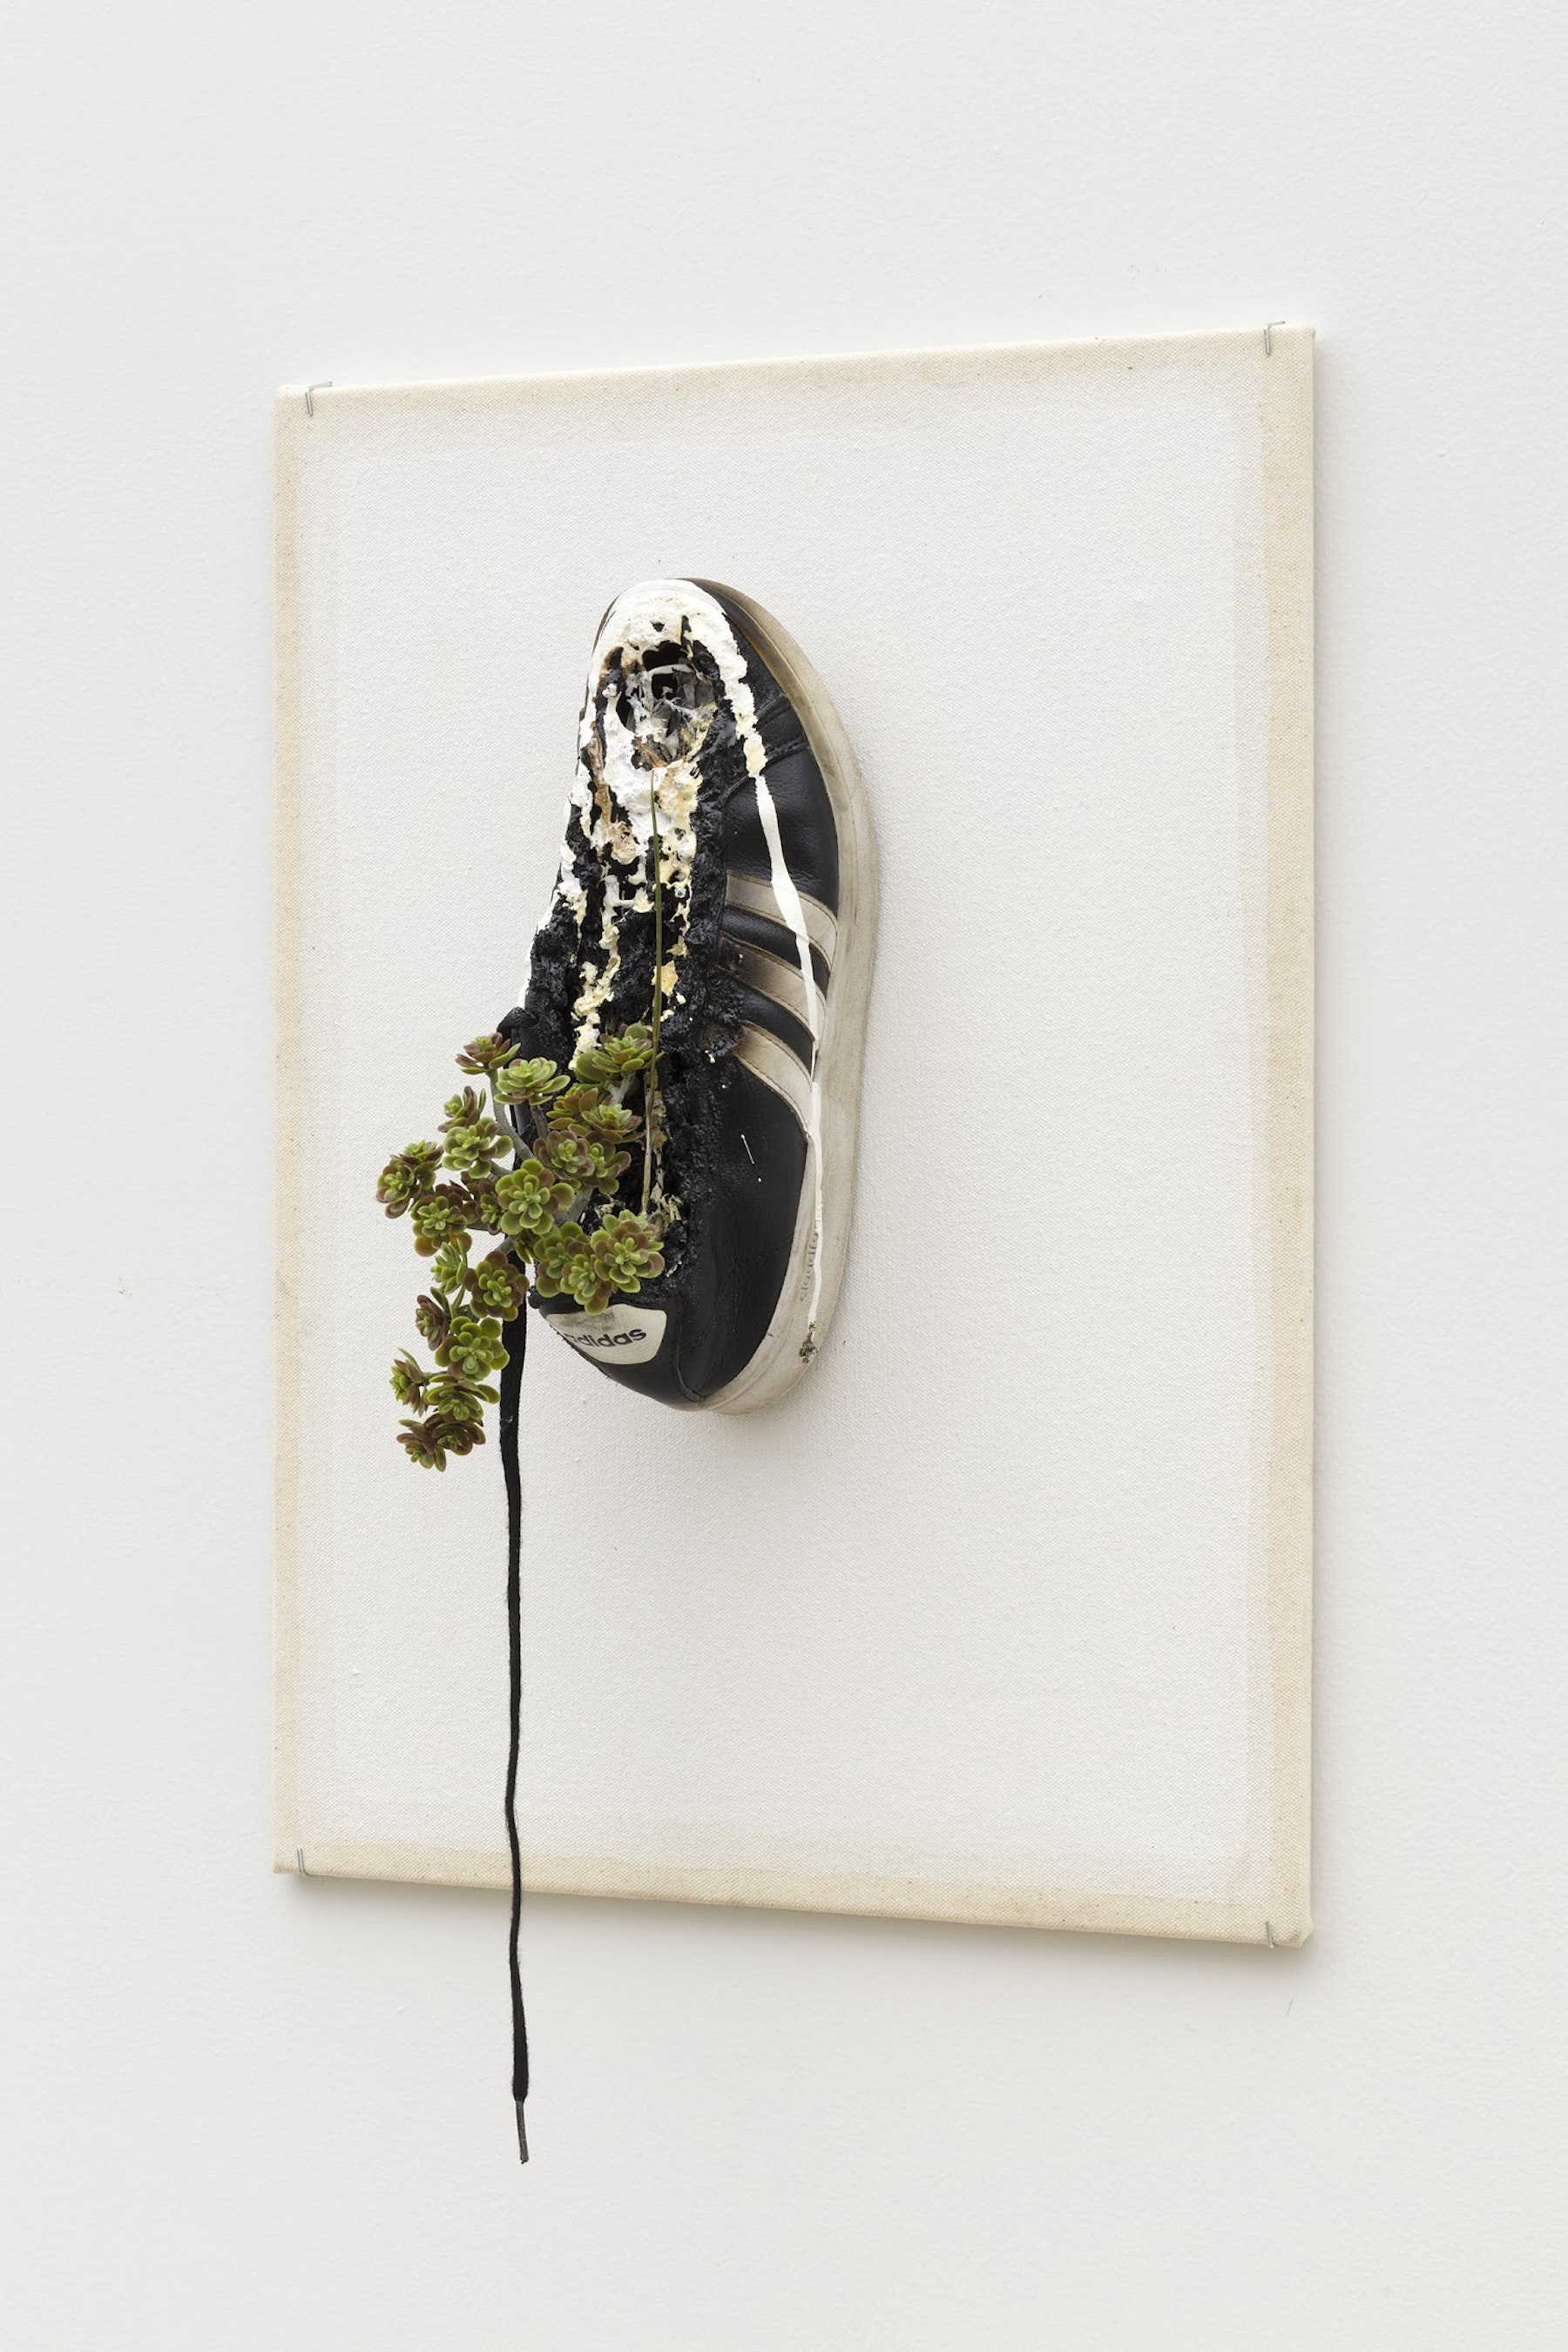 """Edgar Arceneaux """"Gaps Between the Steps II,"""" 2020 Shoe, acrylic paint, sticks, leaves and grass, resin on canvas 23 x 16 x 6"""" [HxWxD] (58.42 x 40.64 x 15.24 cm) Inventory #ARC622 Courtesy of the artist and Vielmetter Los Angeles Photo credit: Jeff Mclane"""